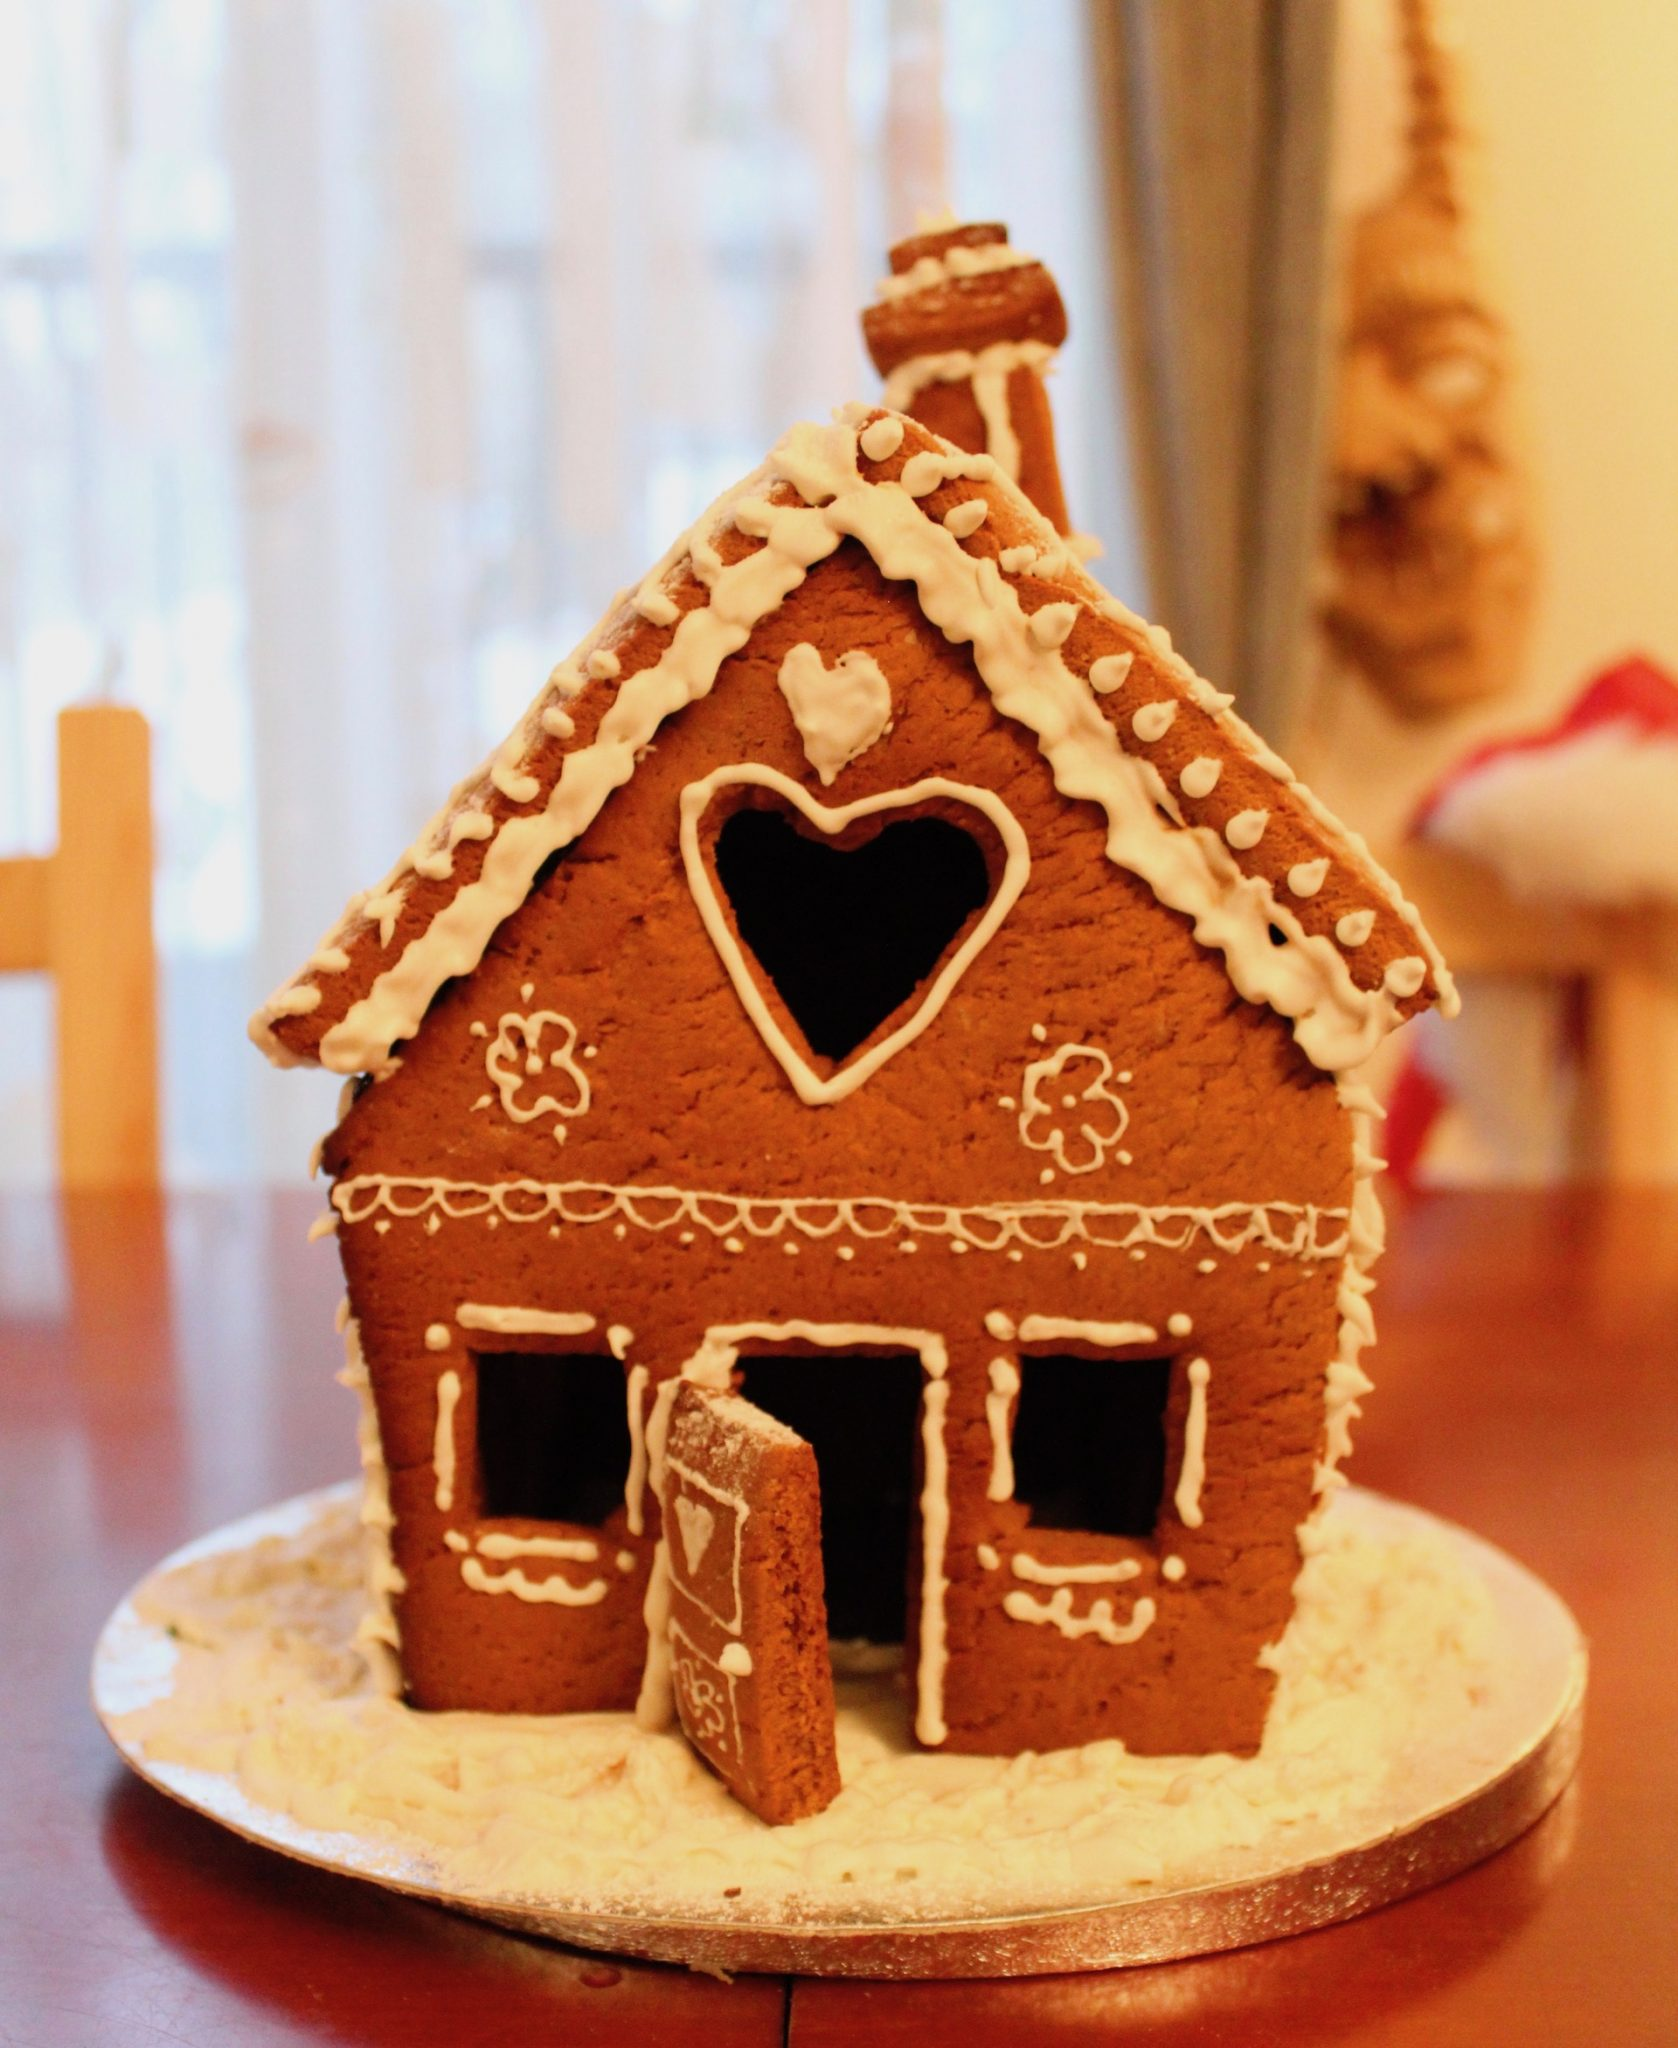 Gingerbread house with piped royal icing frosting